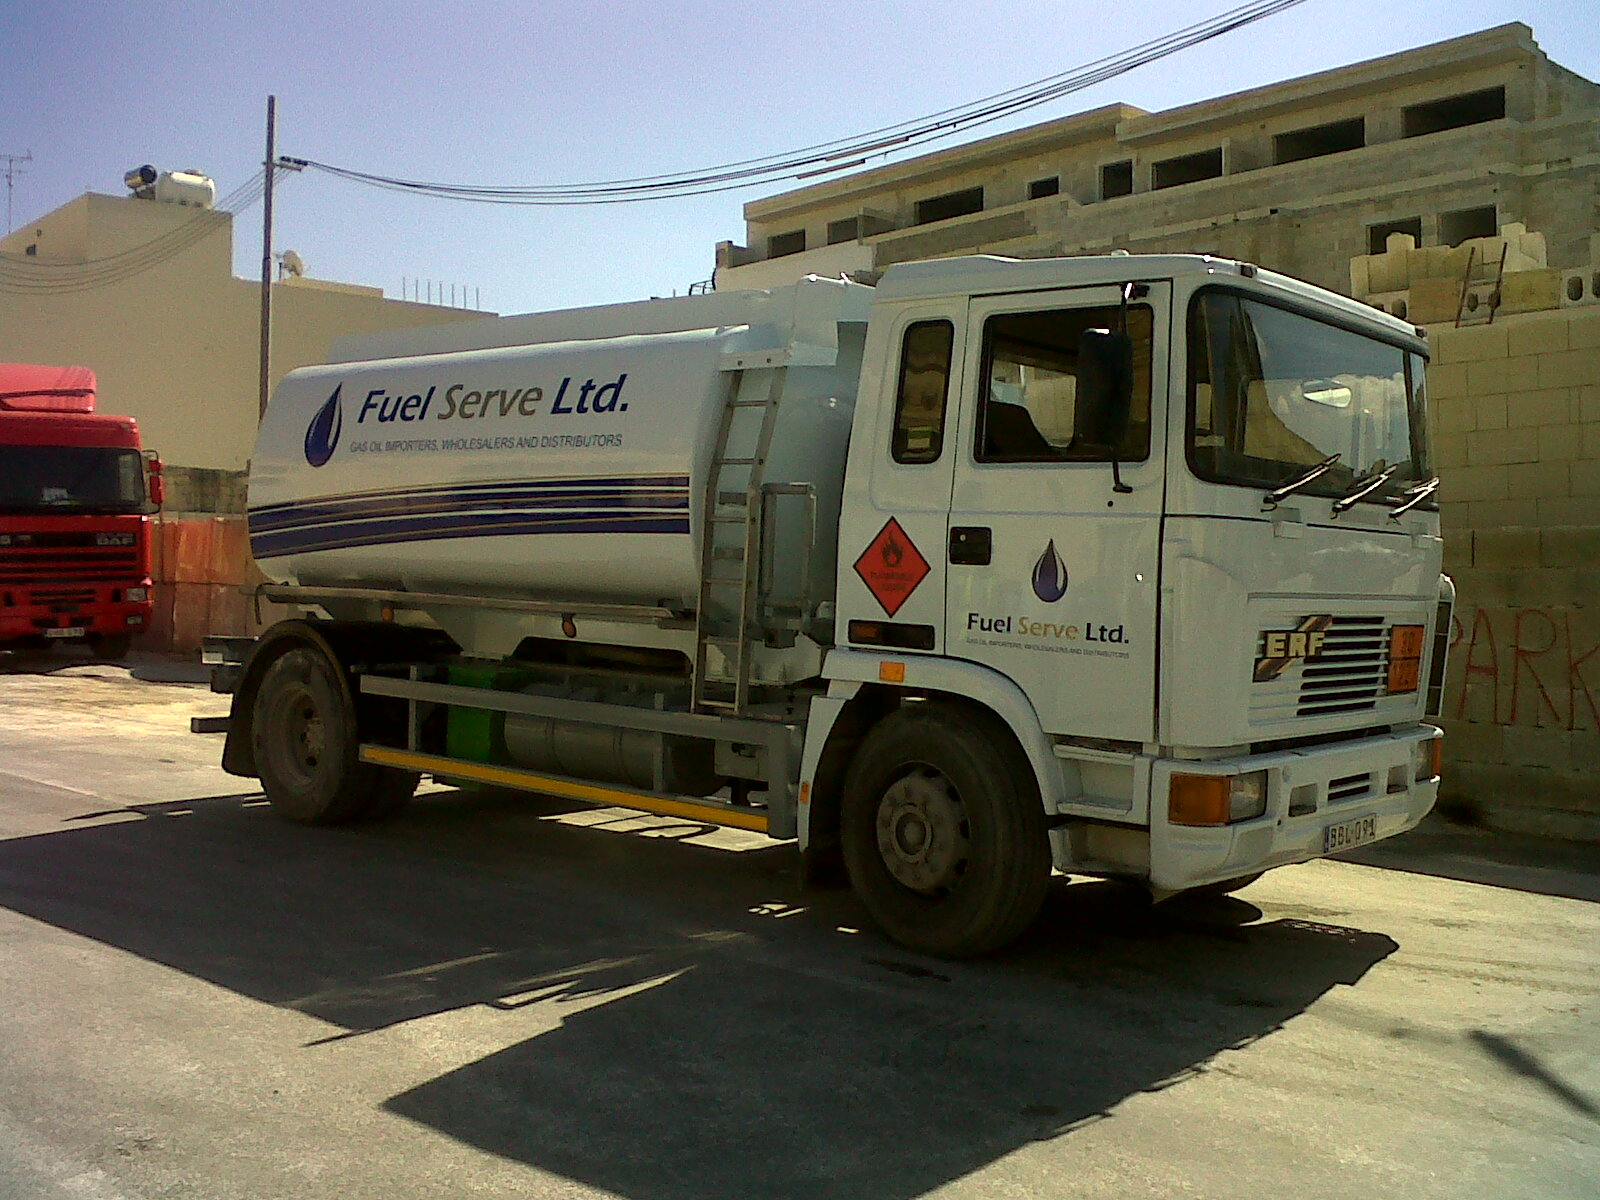 Fuel Serve Ltd.